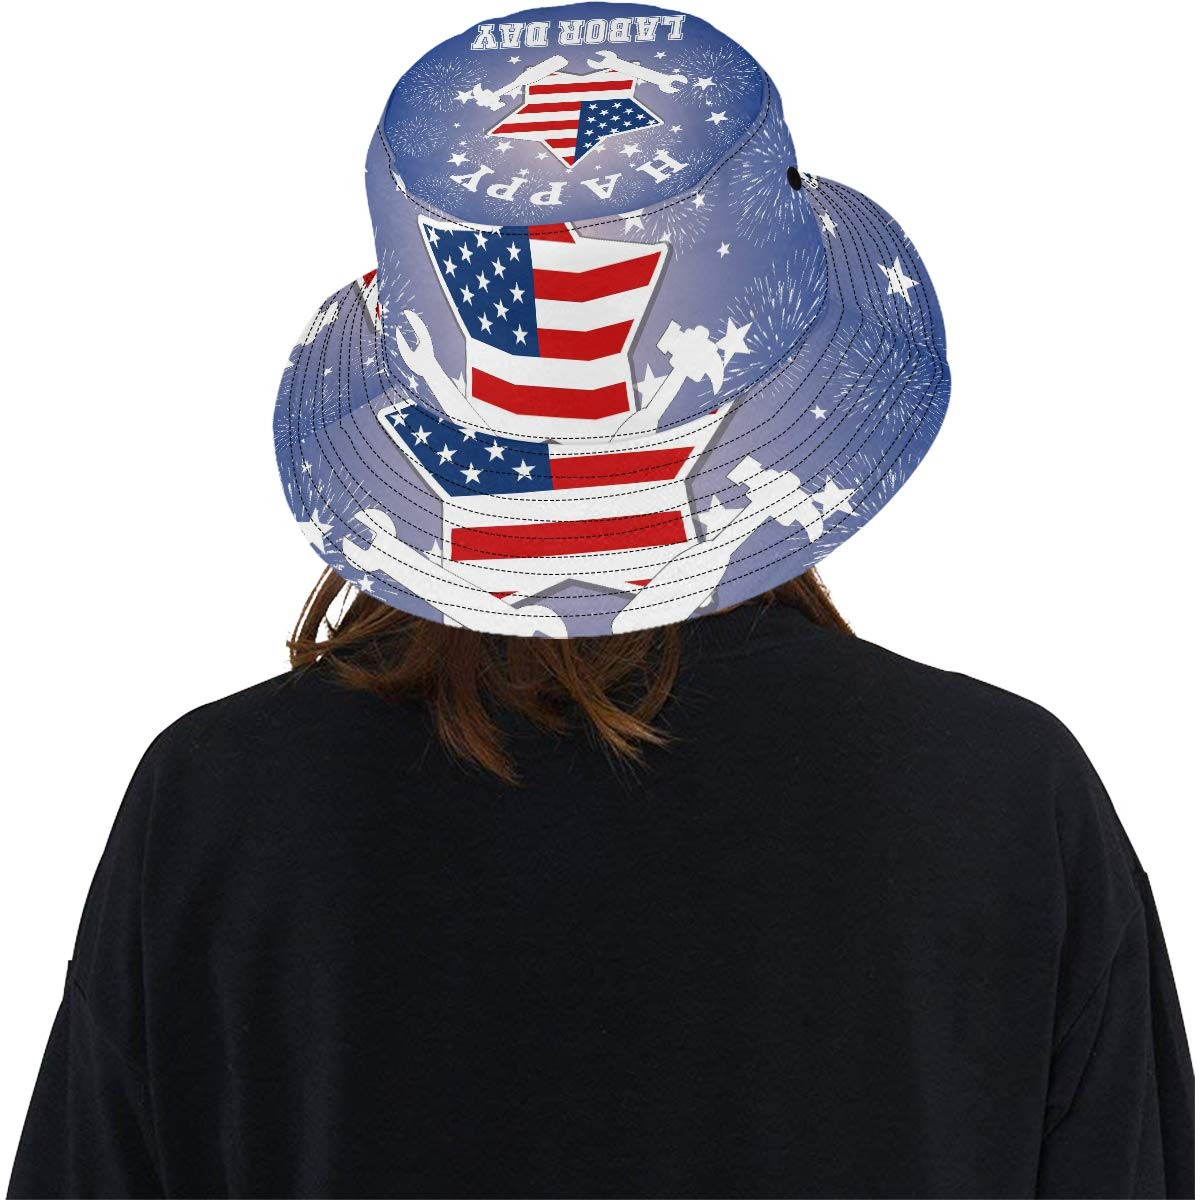 Happy Labor Day for Basic and Equal Rights New Summer Unisex Cotton Fashion Fishing Sun Bucket Hats for Kid Teens Women and Men with Customize Top Packable Fisherman Cap for Outdoor Travel